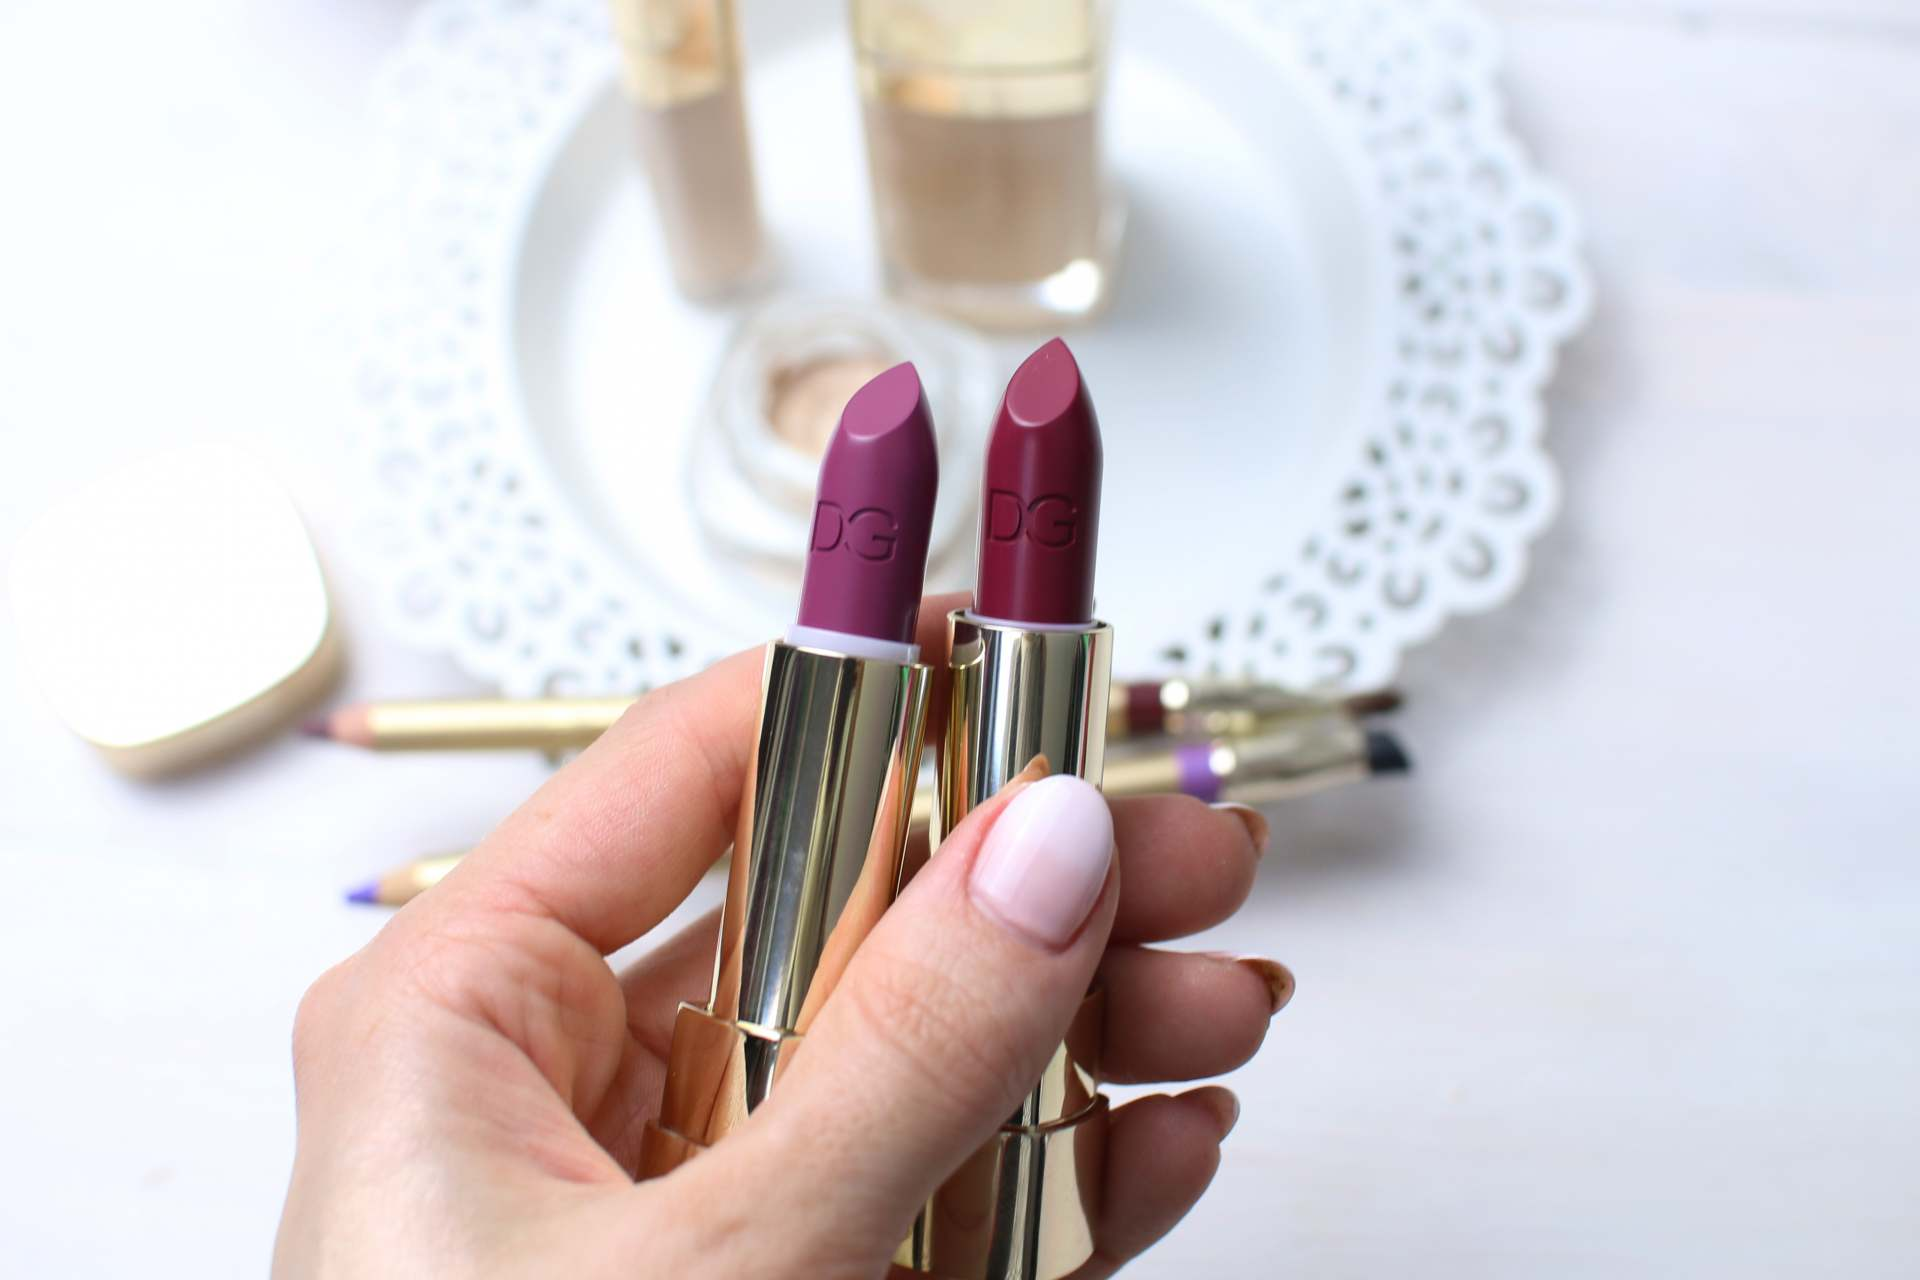 dolce and gabanna beauty inthefrow pink and purple lipsticks